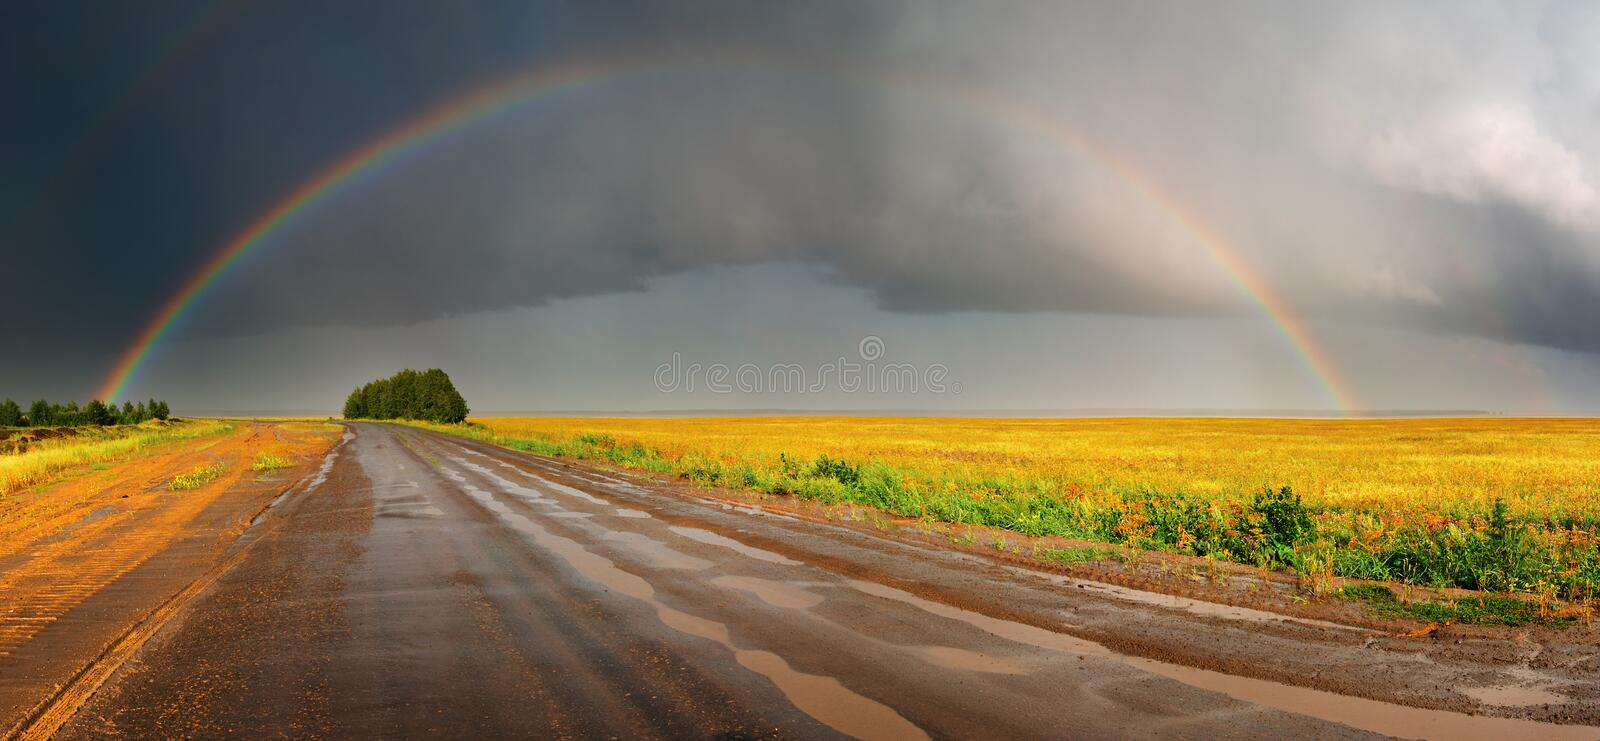 Rainbow over road stock images